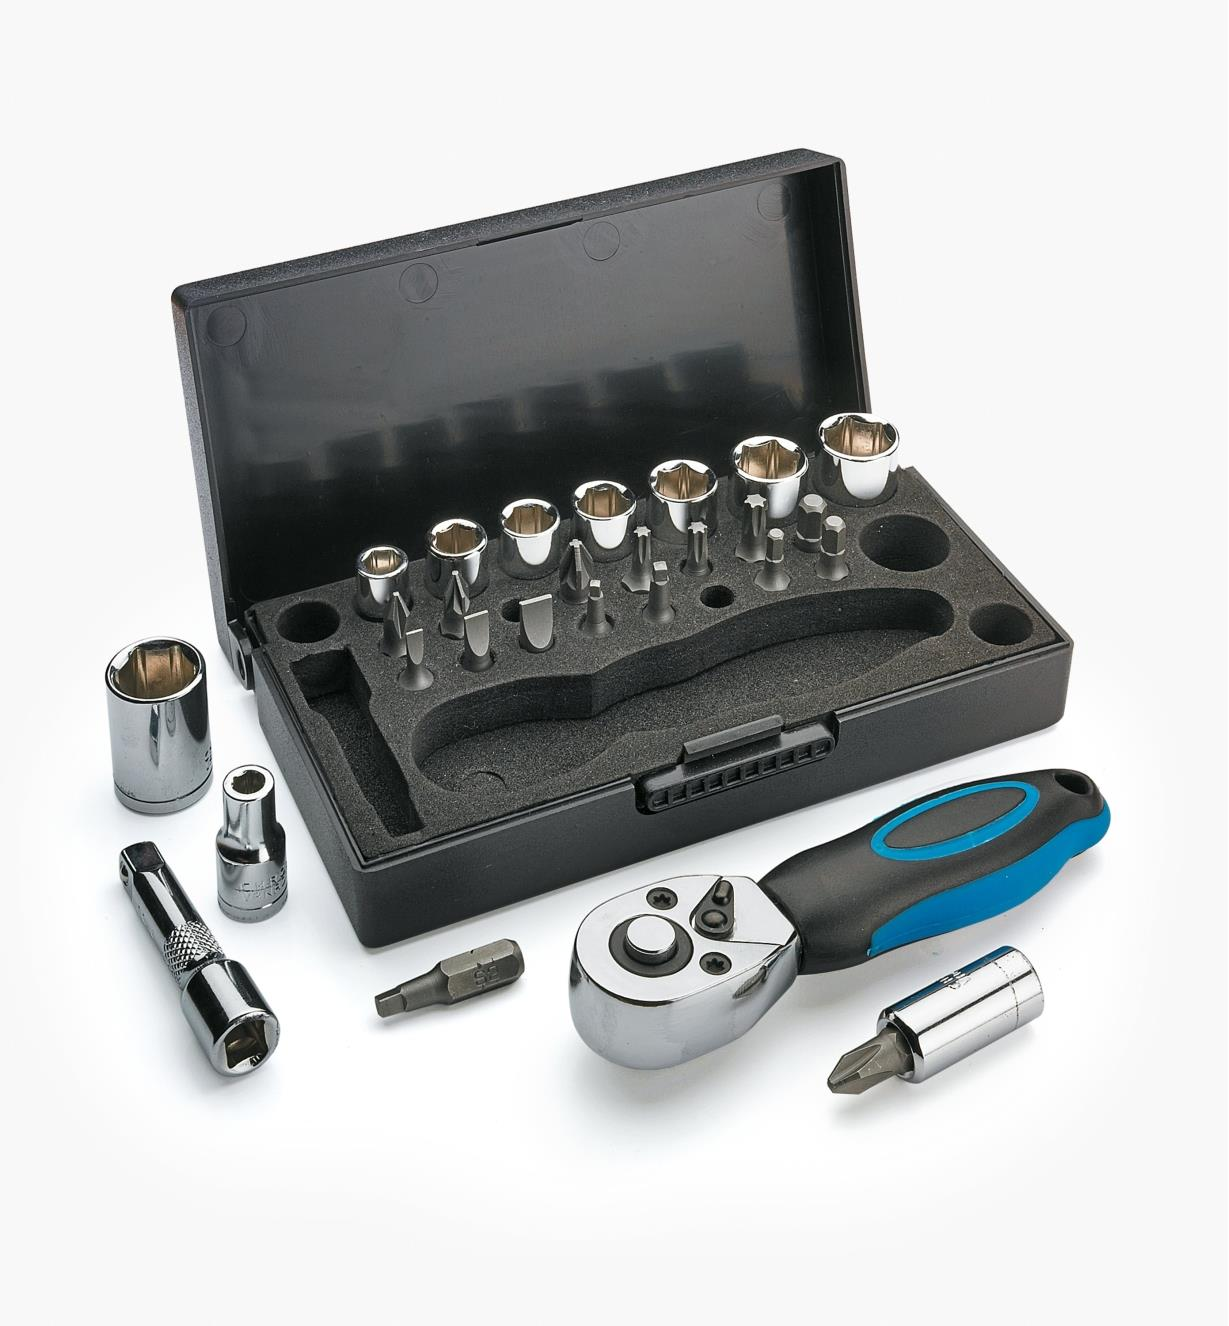 17K0190 - Ratchet Set, Imperial